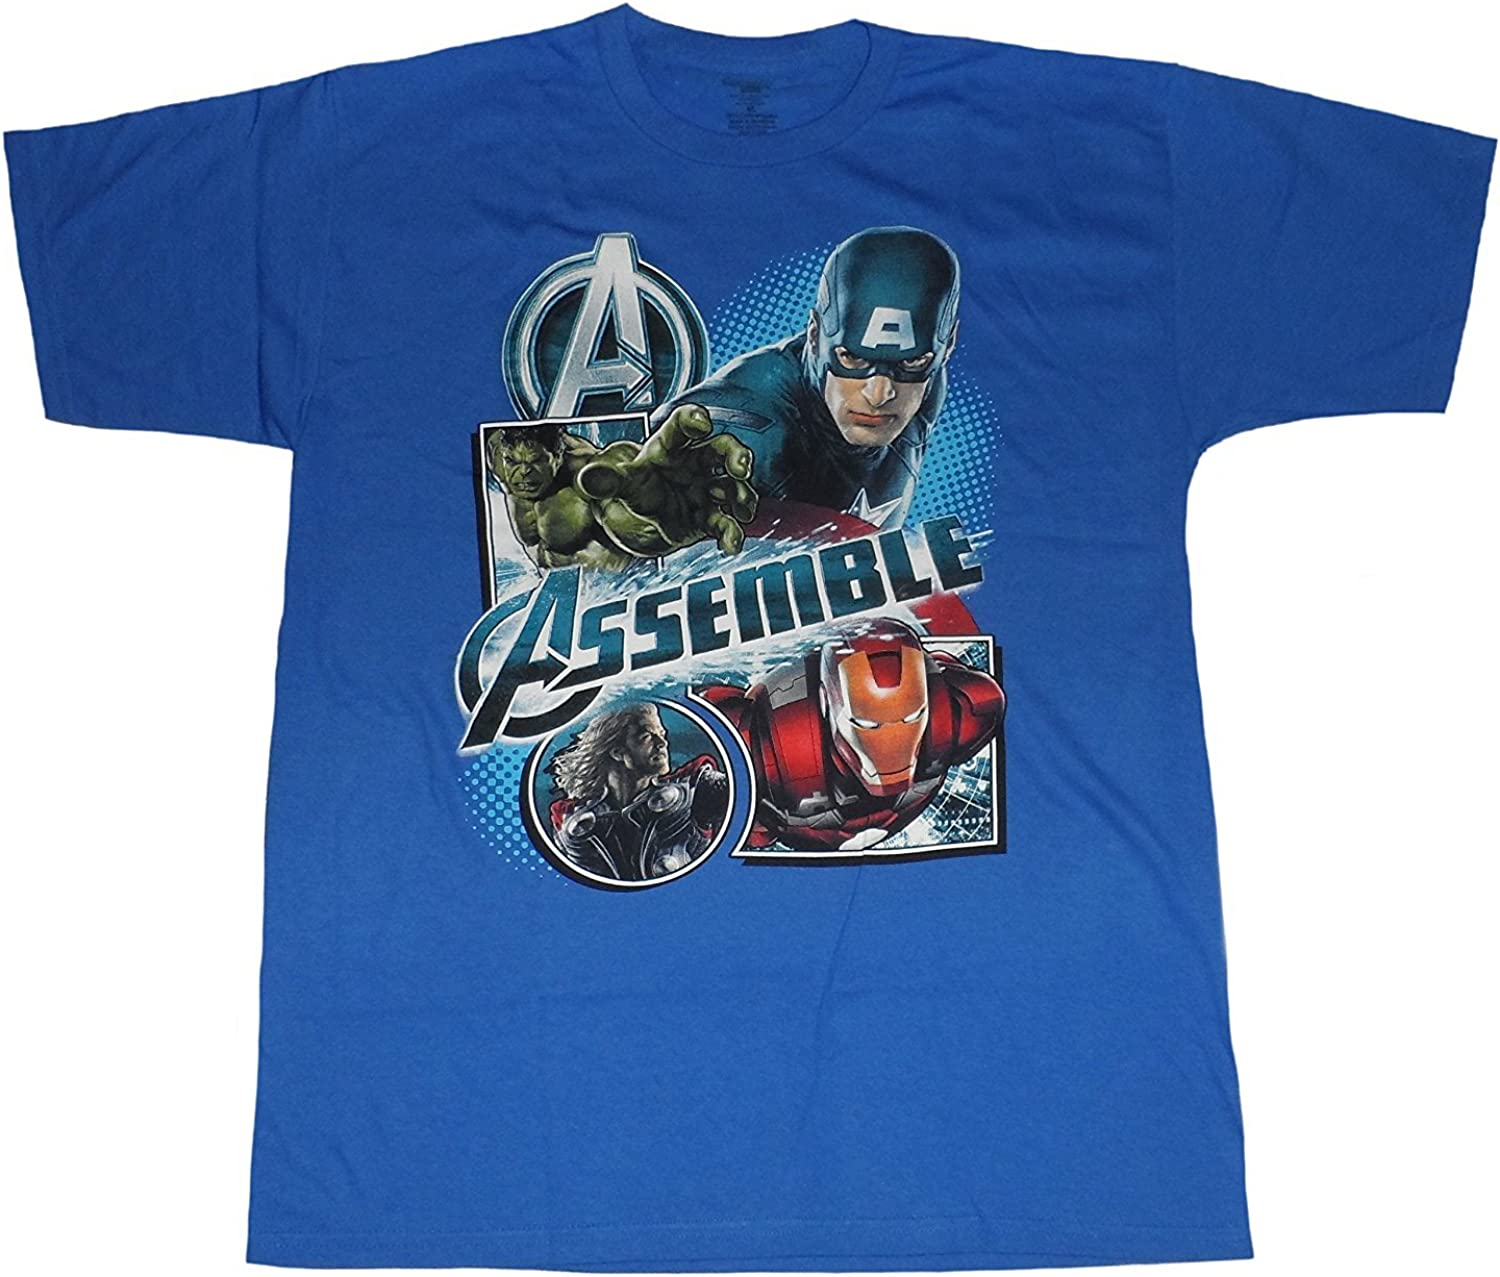 Marvel Avengers Assemble Big Boys Tee